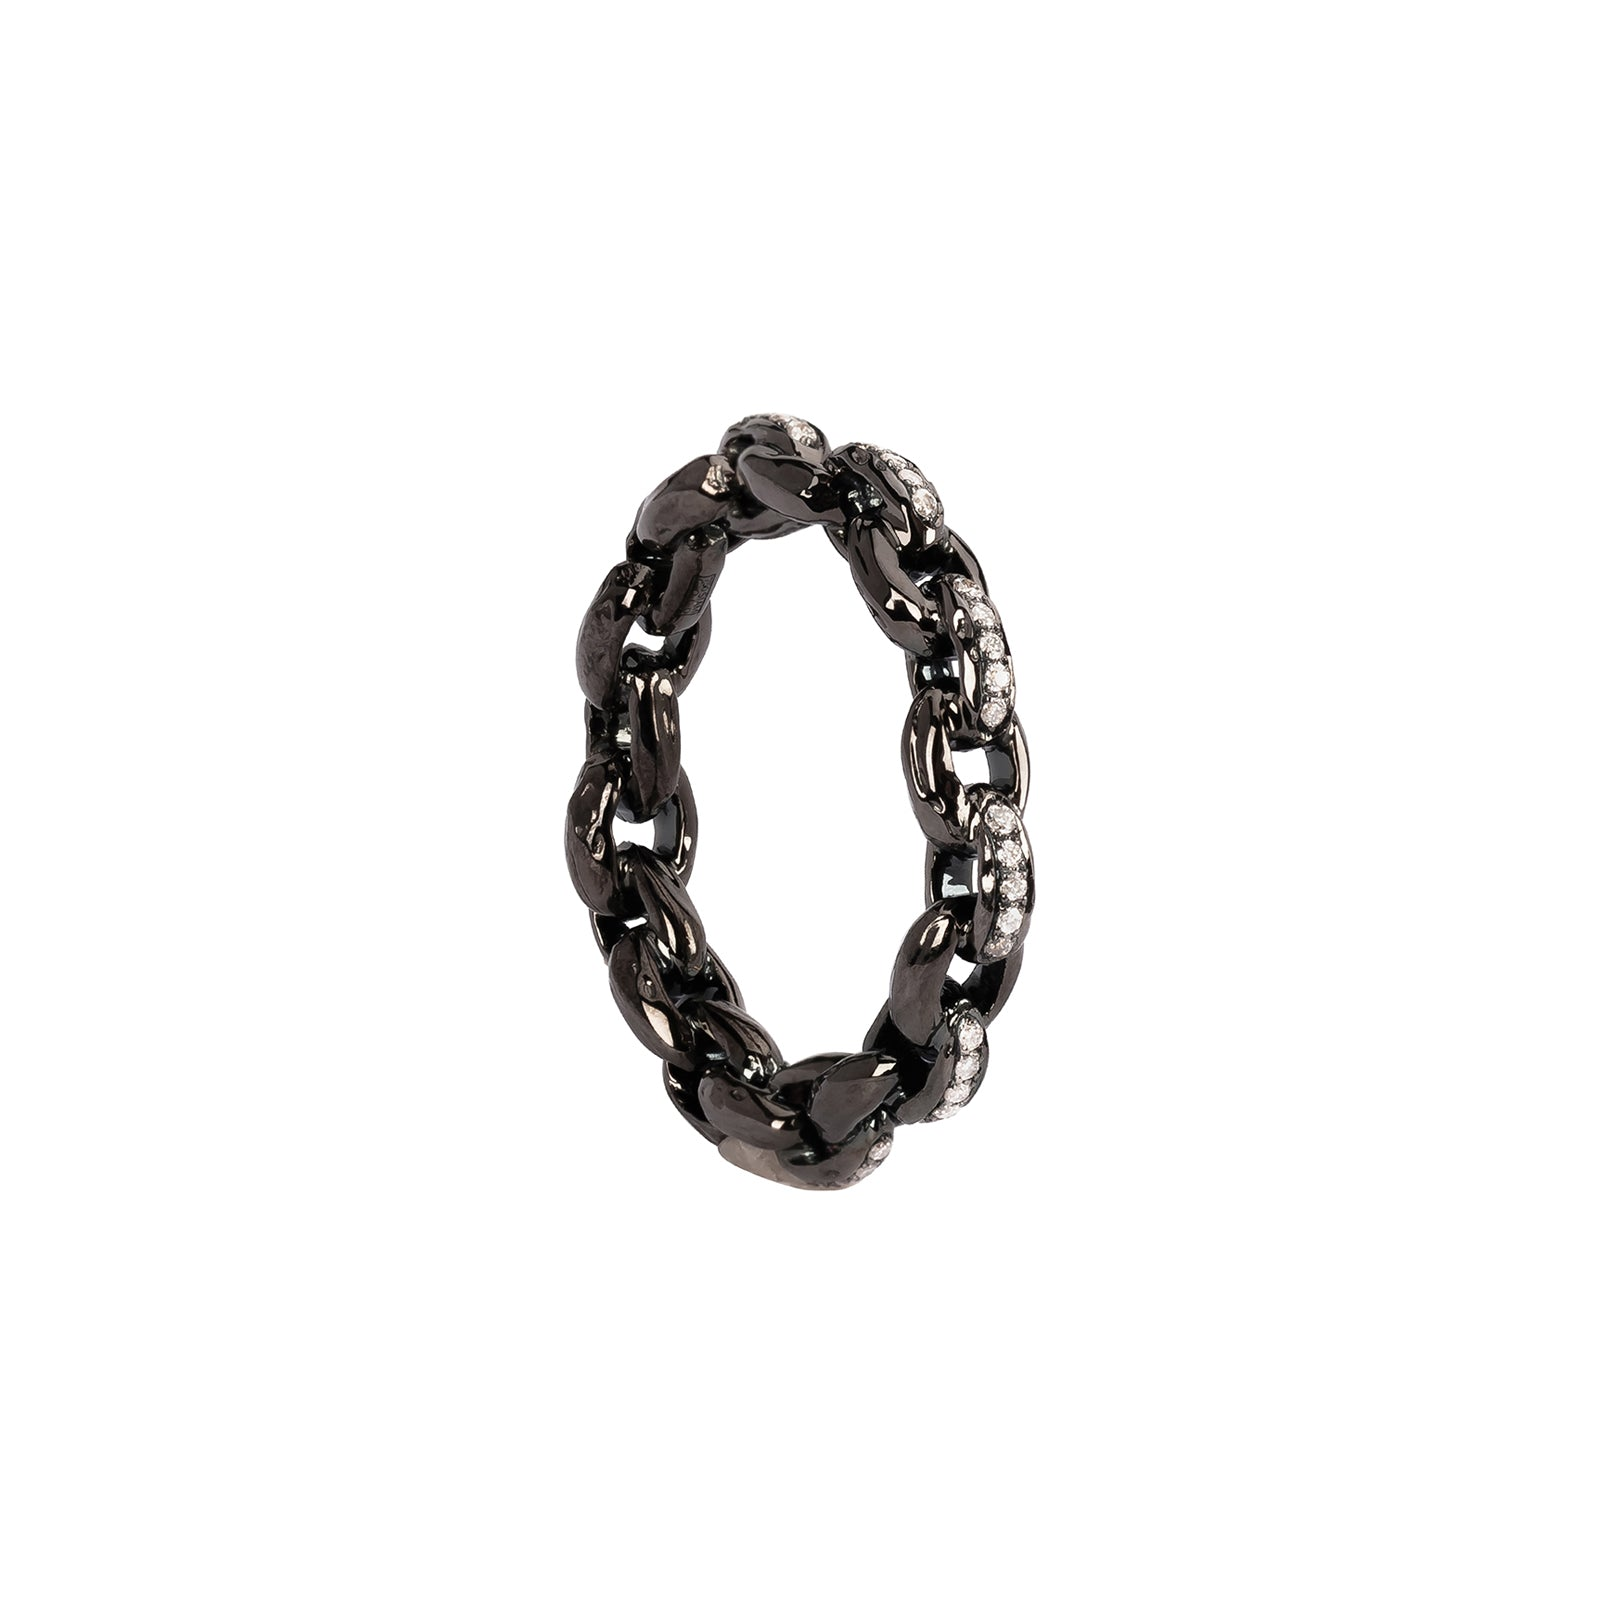 Patcharavipa Diamond Chain Row Ring - Black Gold - Rings - Broken English Jewelry